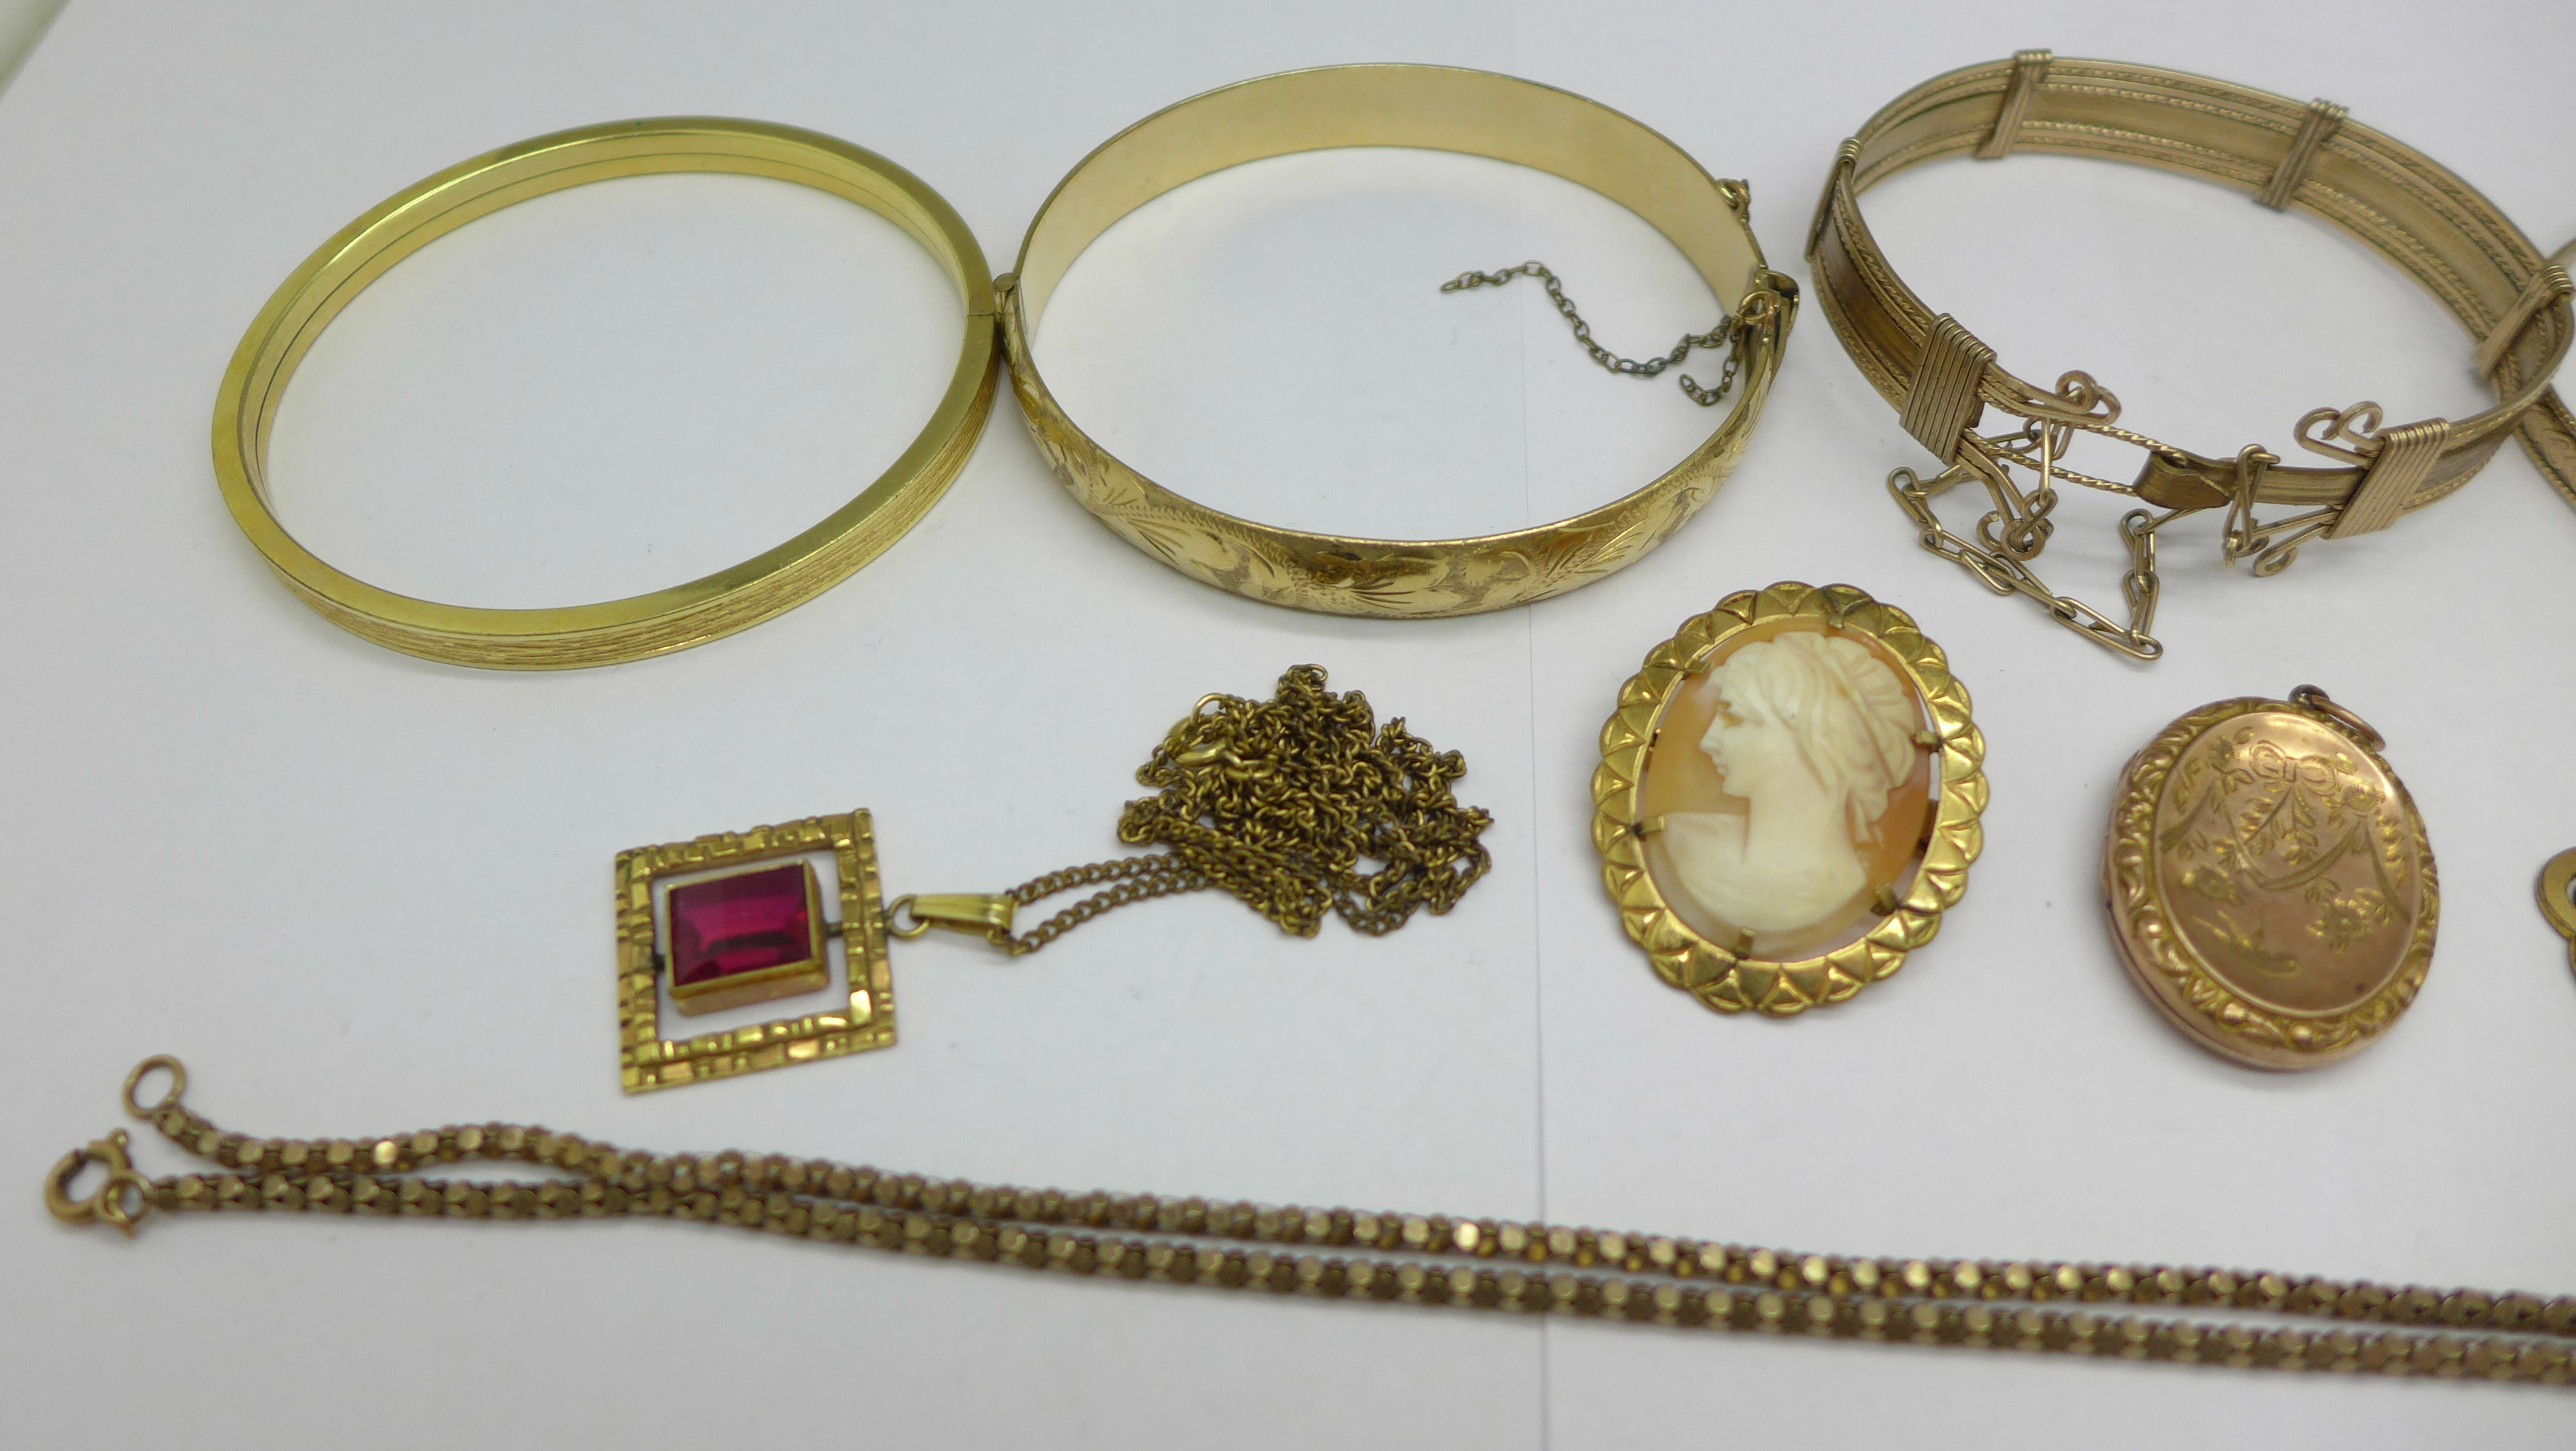 Plated jewellery including five bangles and a 9ct back & front locket - Image 2 of 3